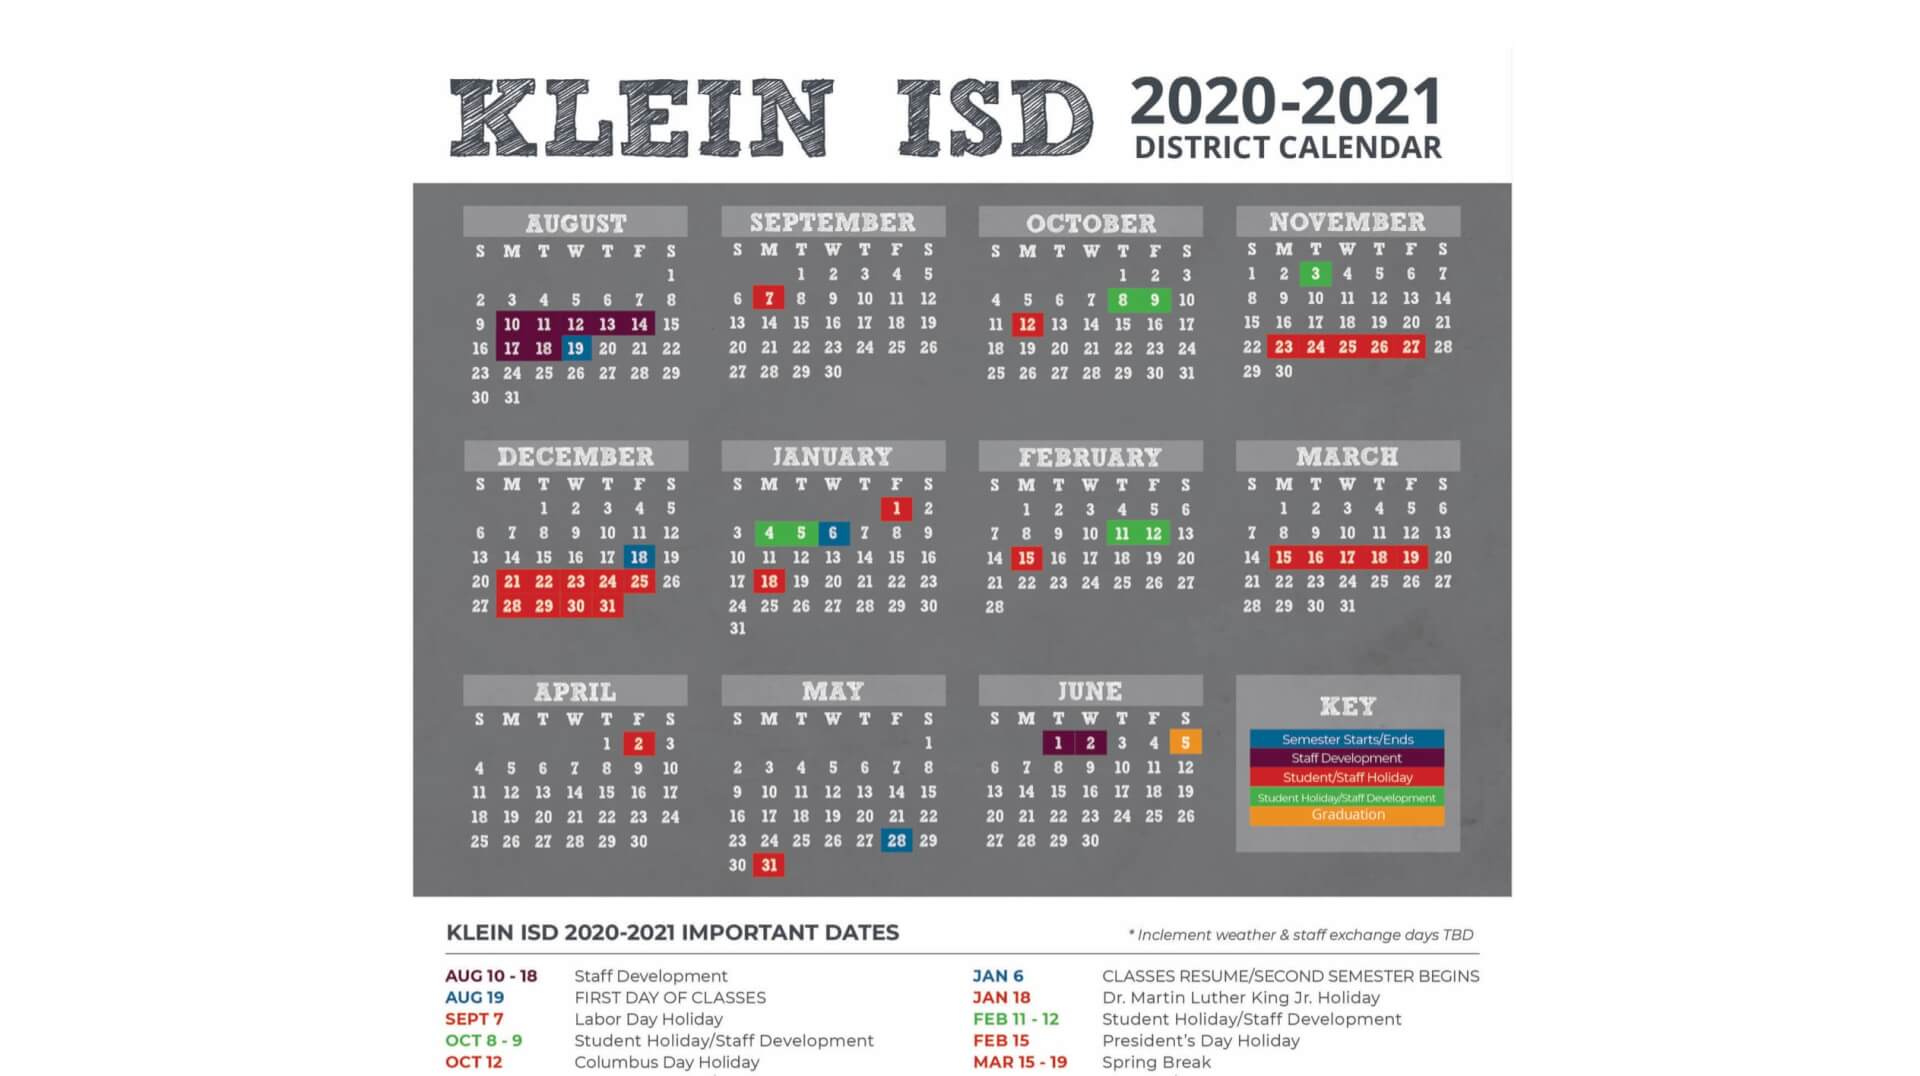 Ksd Calendar 2021-22 2020 2021 Klein ISD District Calendar Released   Klein ISD Newsroom